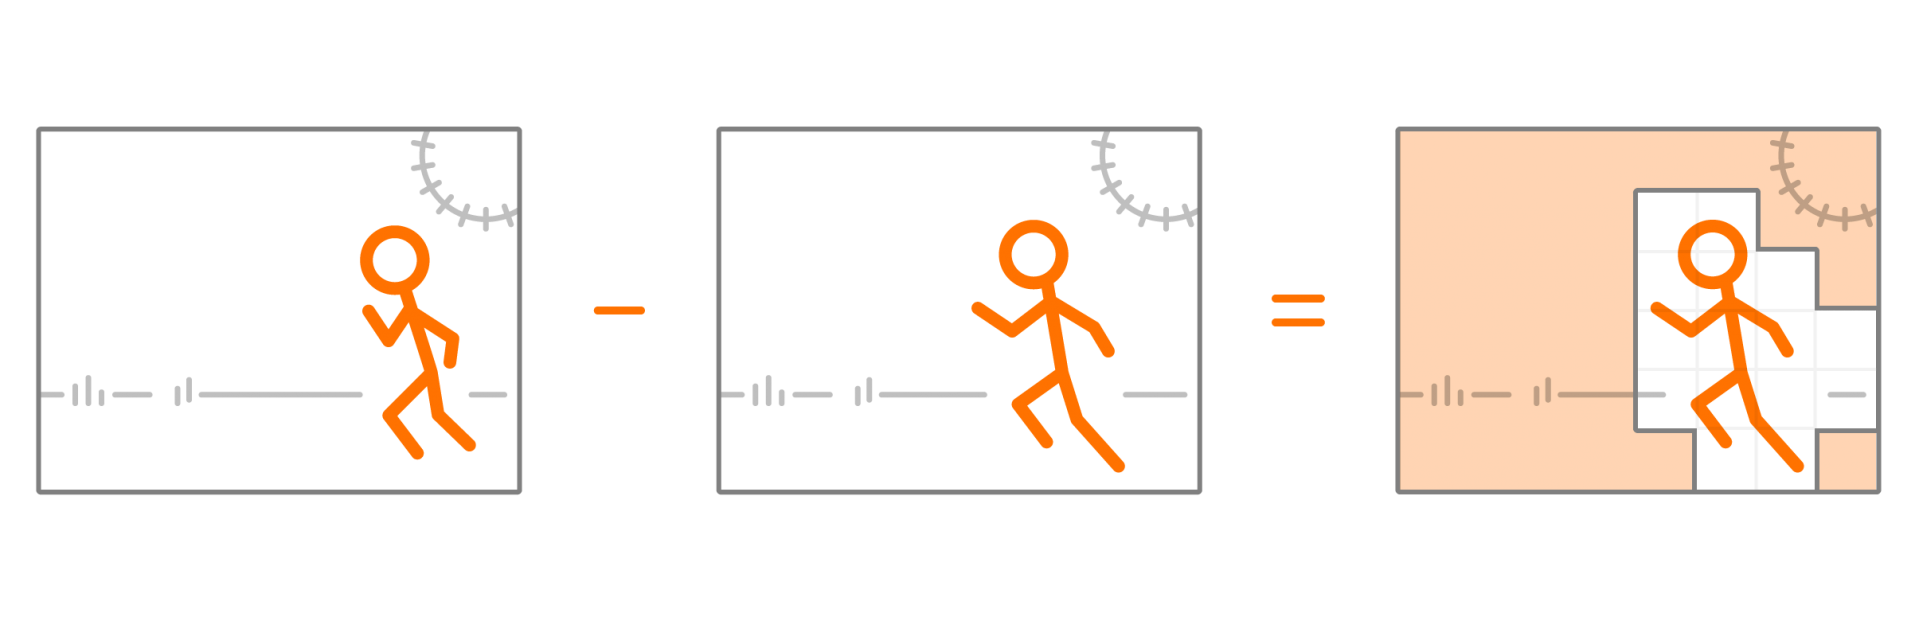 An illustration of a stick figure running. The graphic highlights the parts of the video that stay the same between frames and those that change.